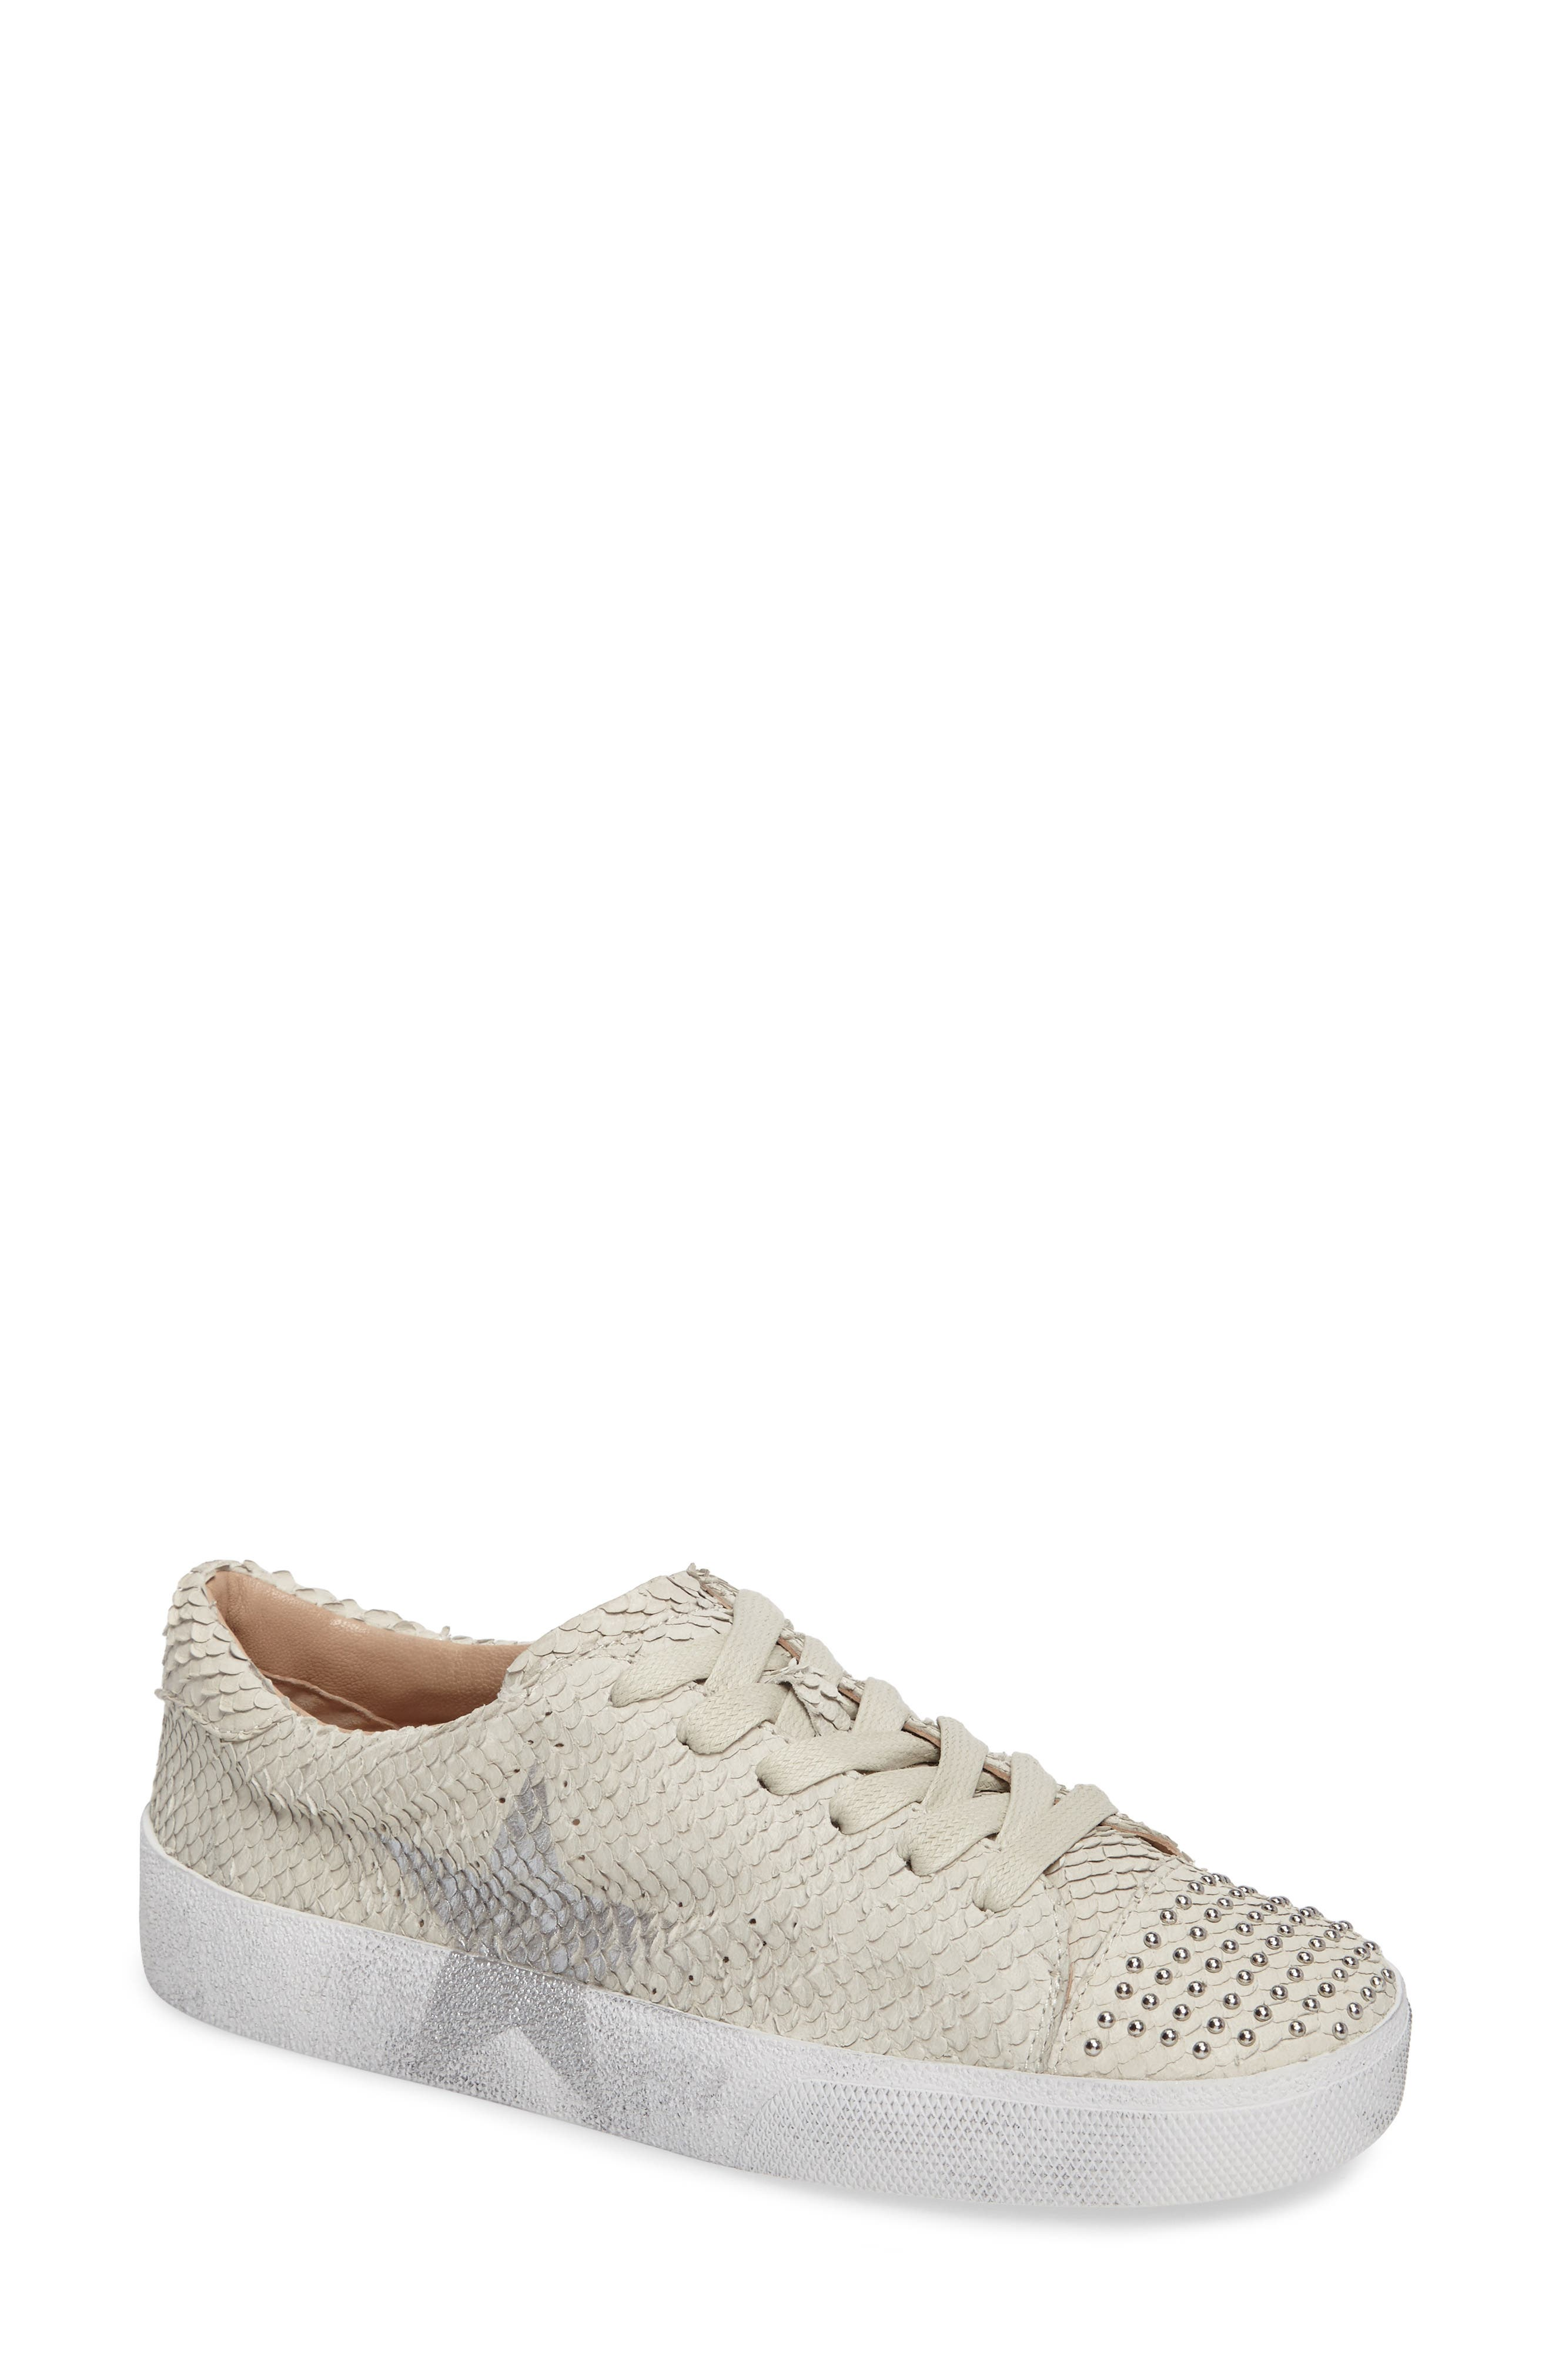 Catcall Studded Sneaker,                             Main thumbnail 1, color,                             Vodka/ Silver